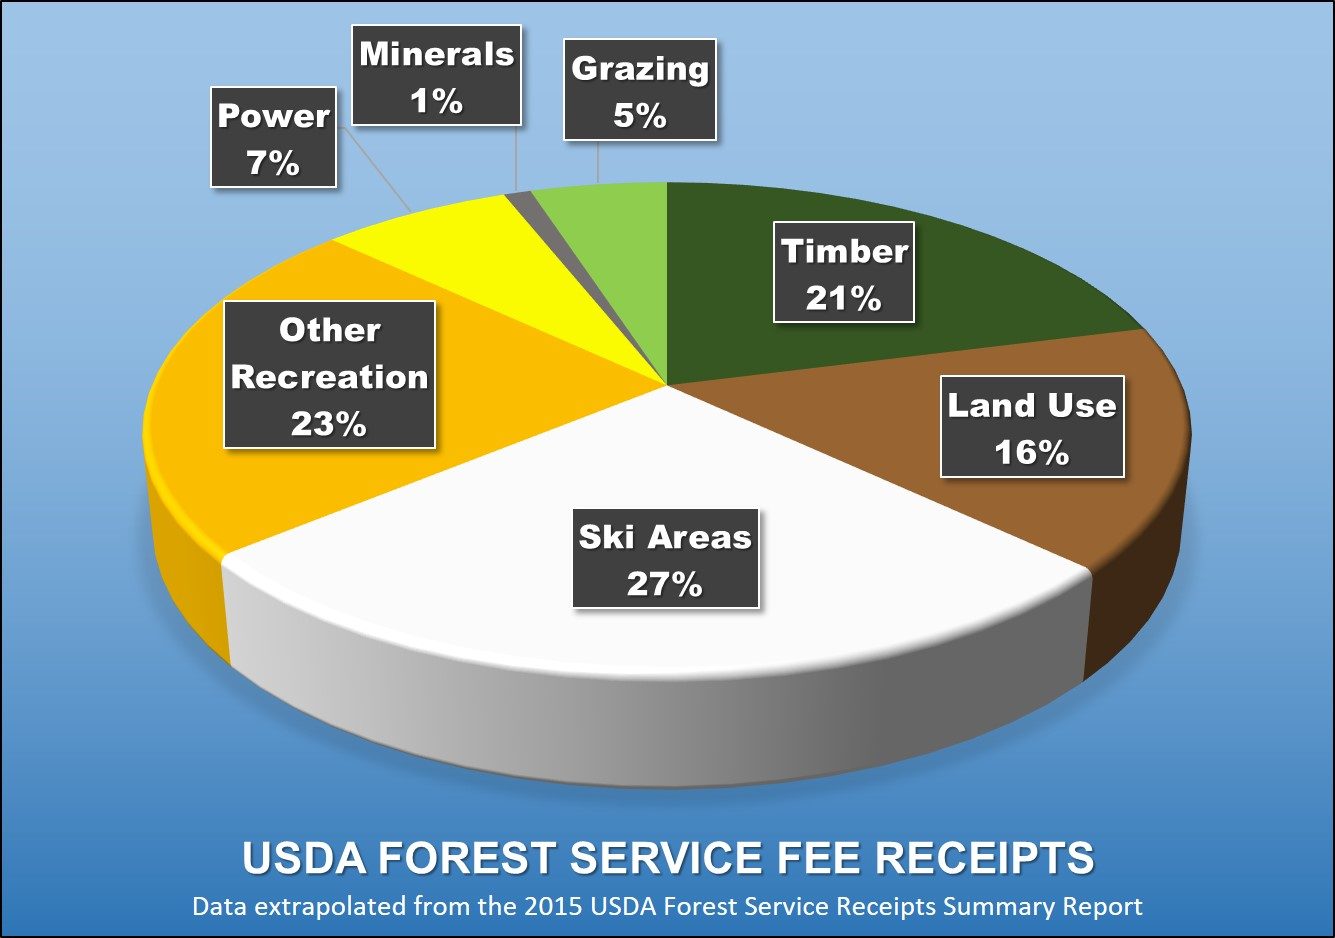 A chart showing U.S. Forest Service fee receipts; Ski Areas 27%, Other Recreation 23%, Timber 21%, Land Use 16%, Power 7%, Grazing 5% and Minerals 1%.